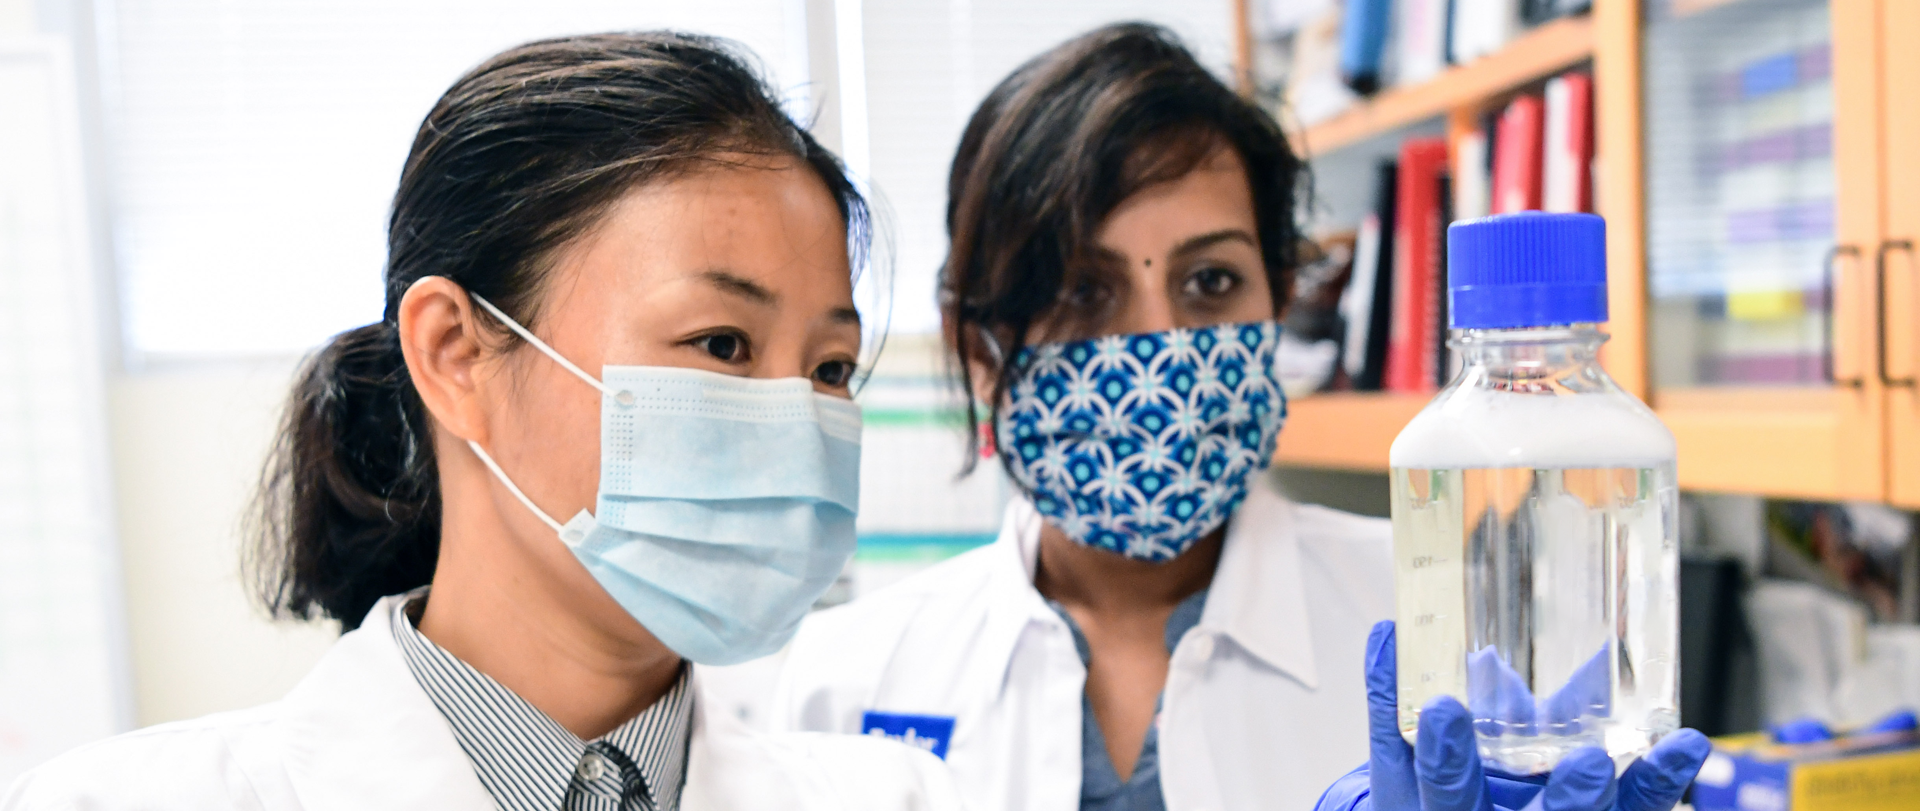 Two researchers wearing face masks work in a lab.